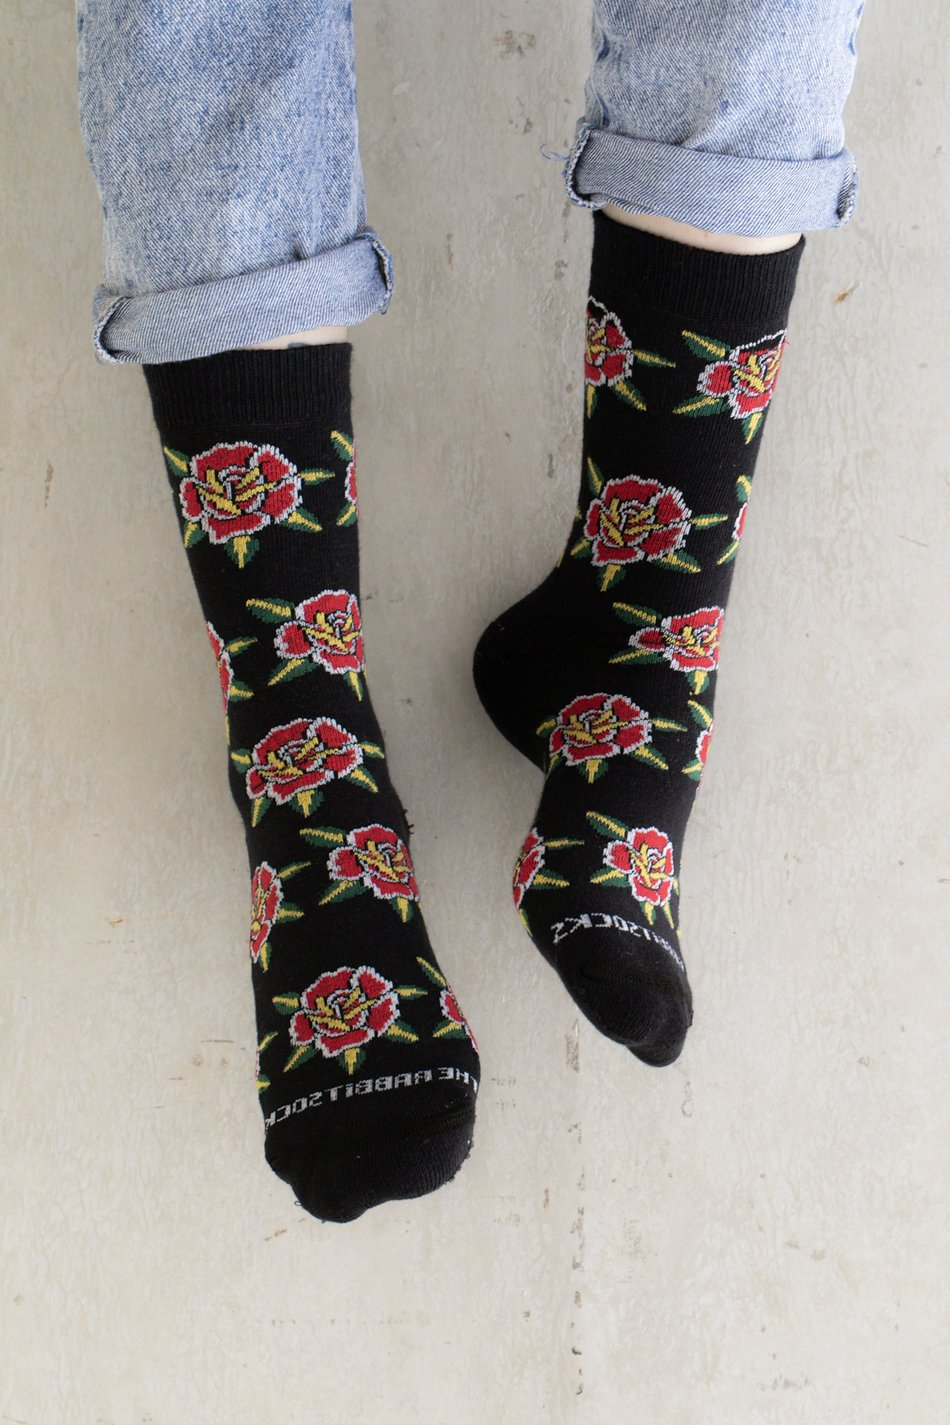 MEIA FLORAL OLD - THE RABBIT SOCKS